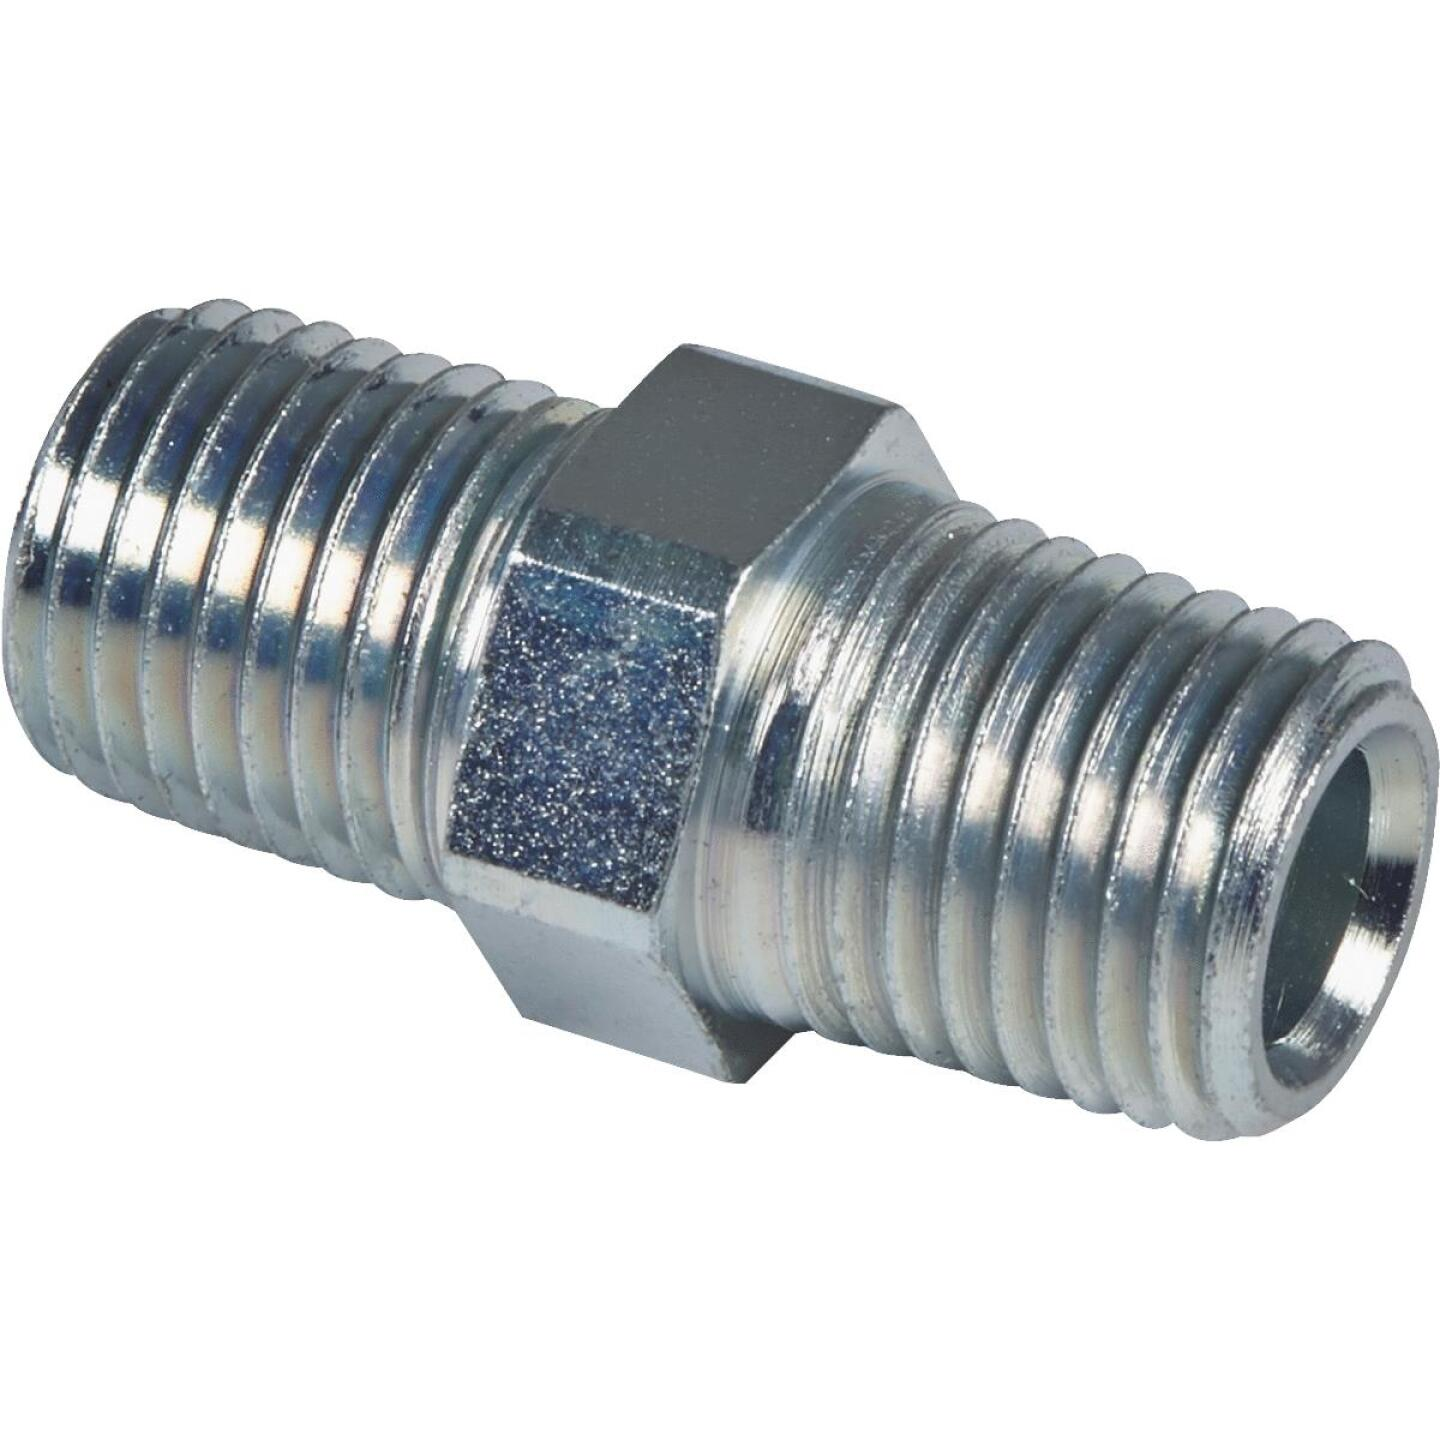 Graco Airless Paint Hose Connector Image 3